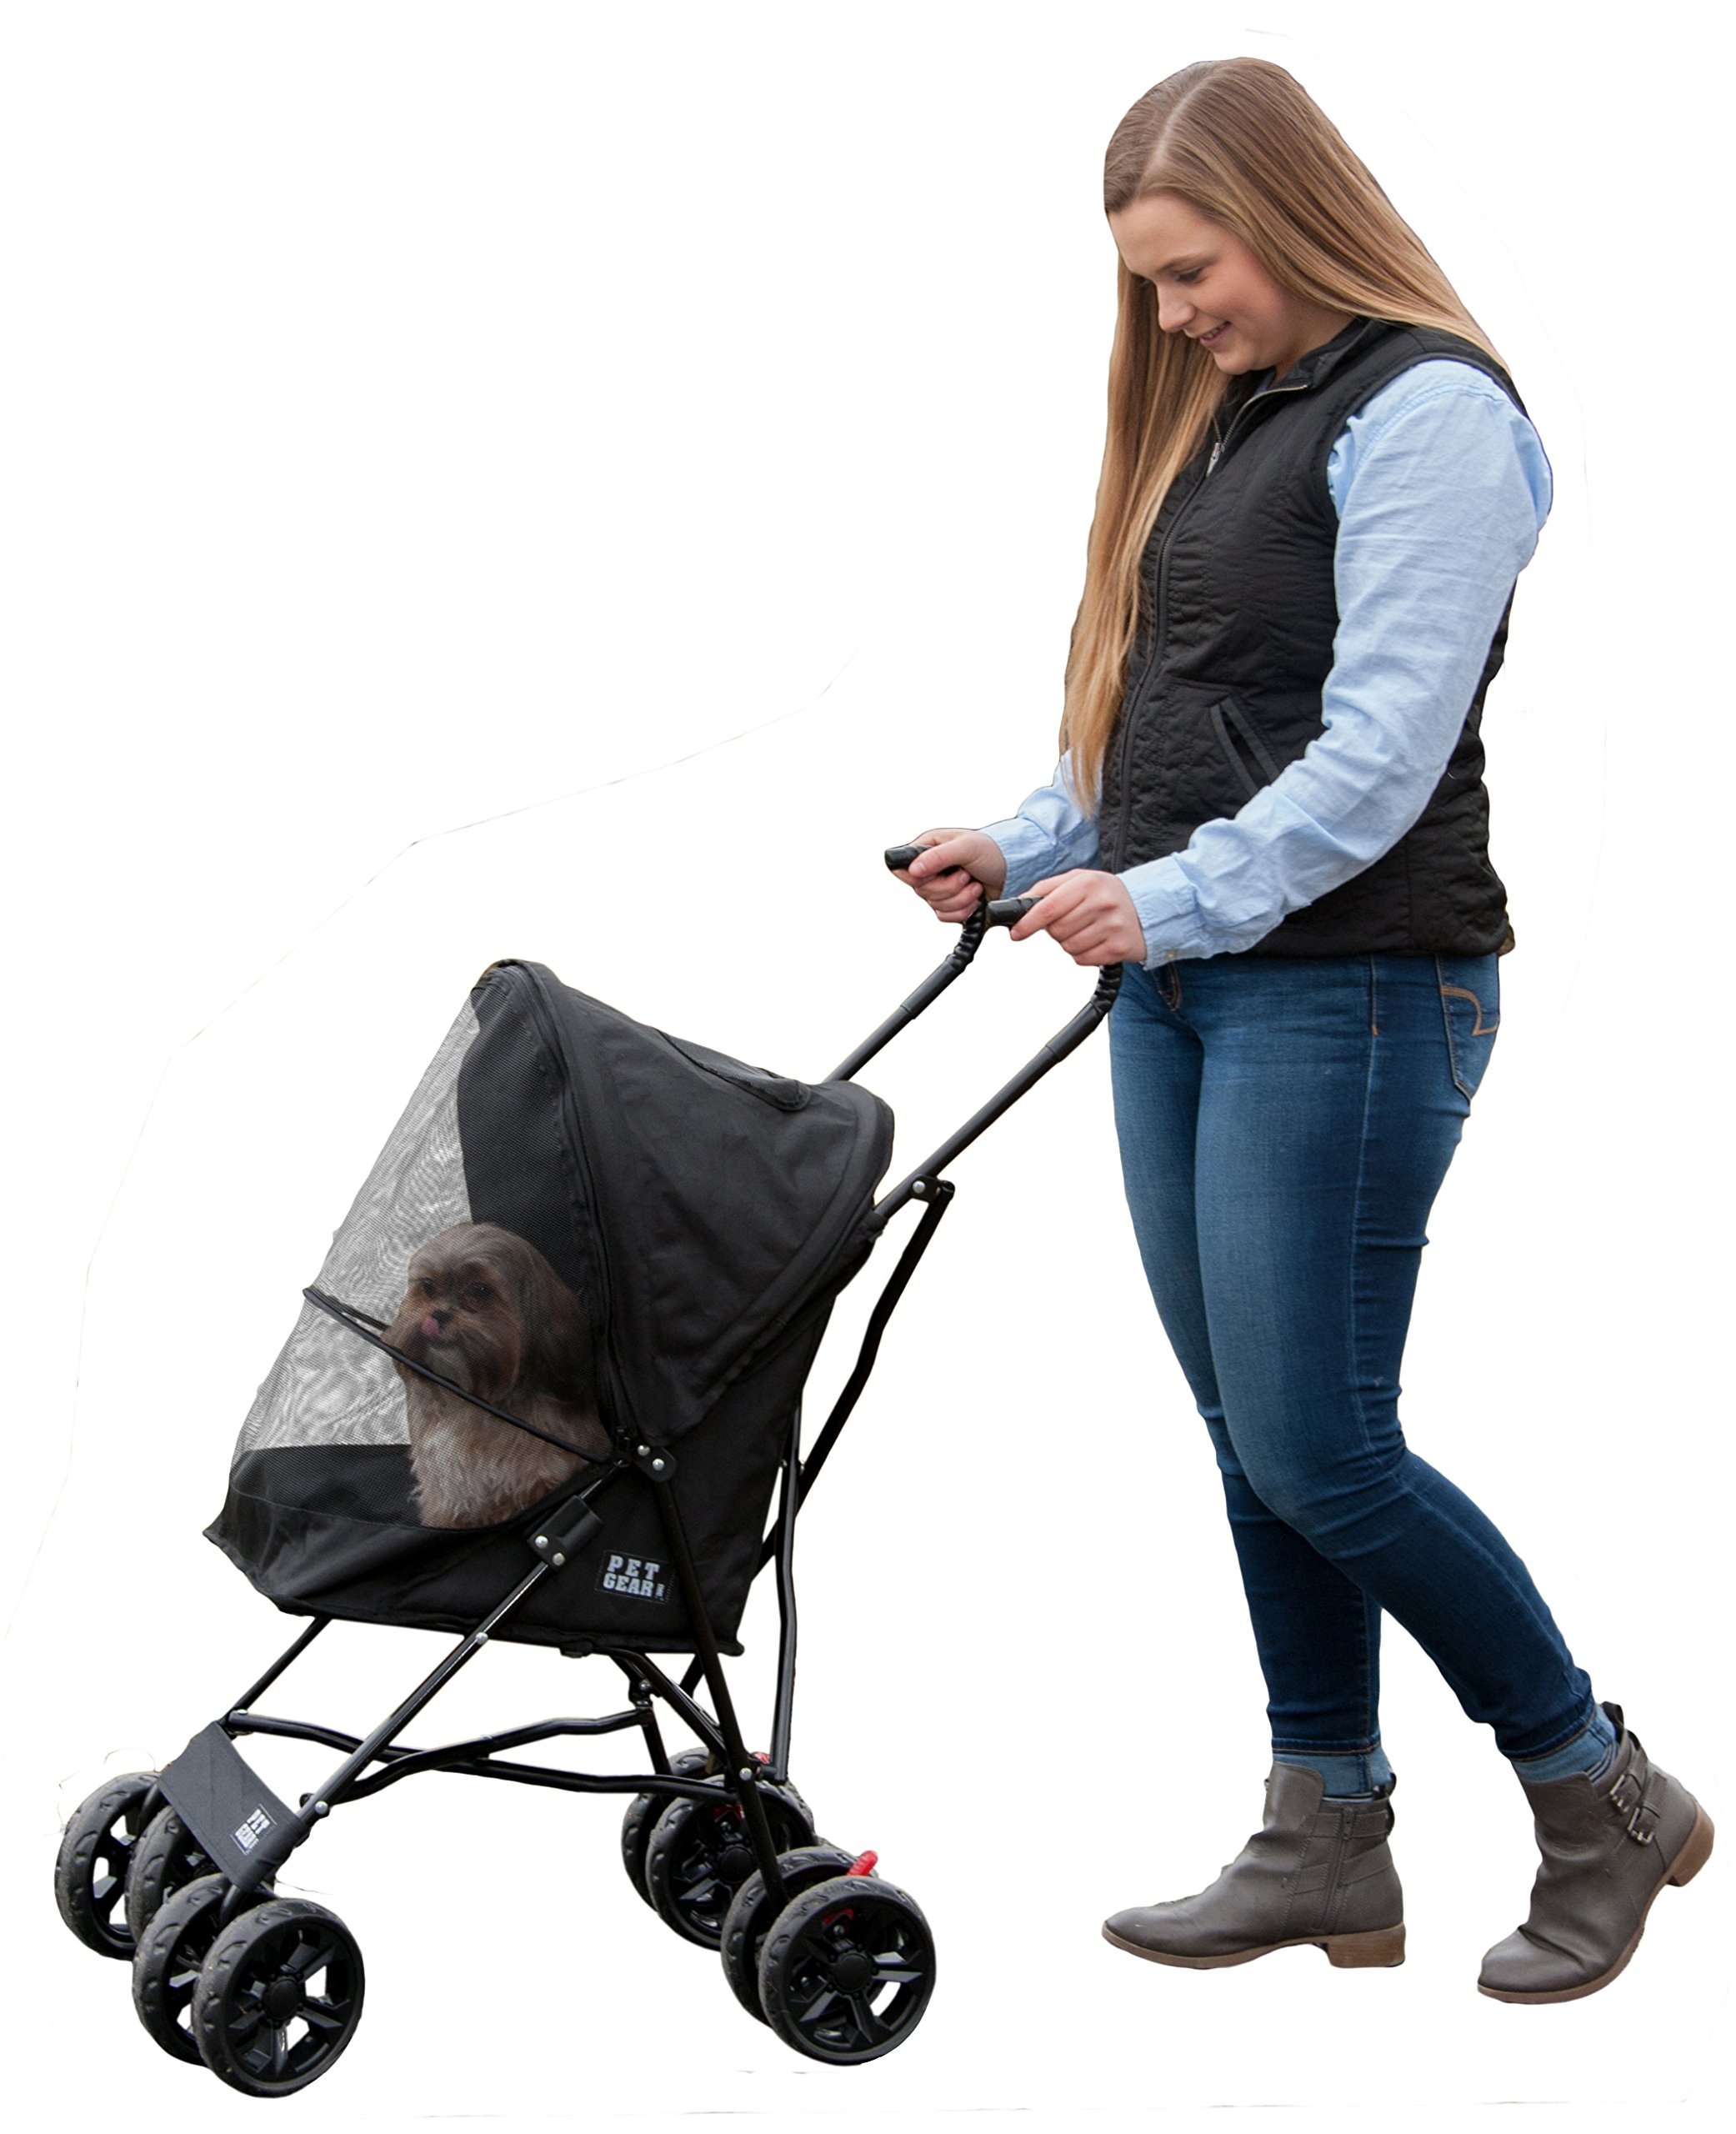 Pet Gear Travel Lite Pet Stroller for Cats and Dogs up to 15-pounds, Black by Pet Gear